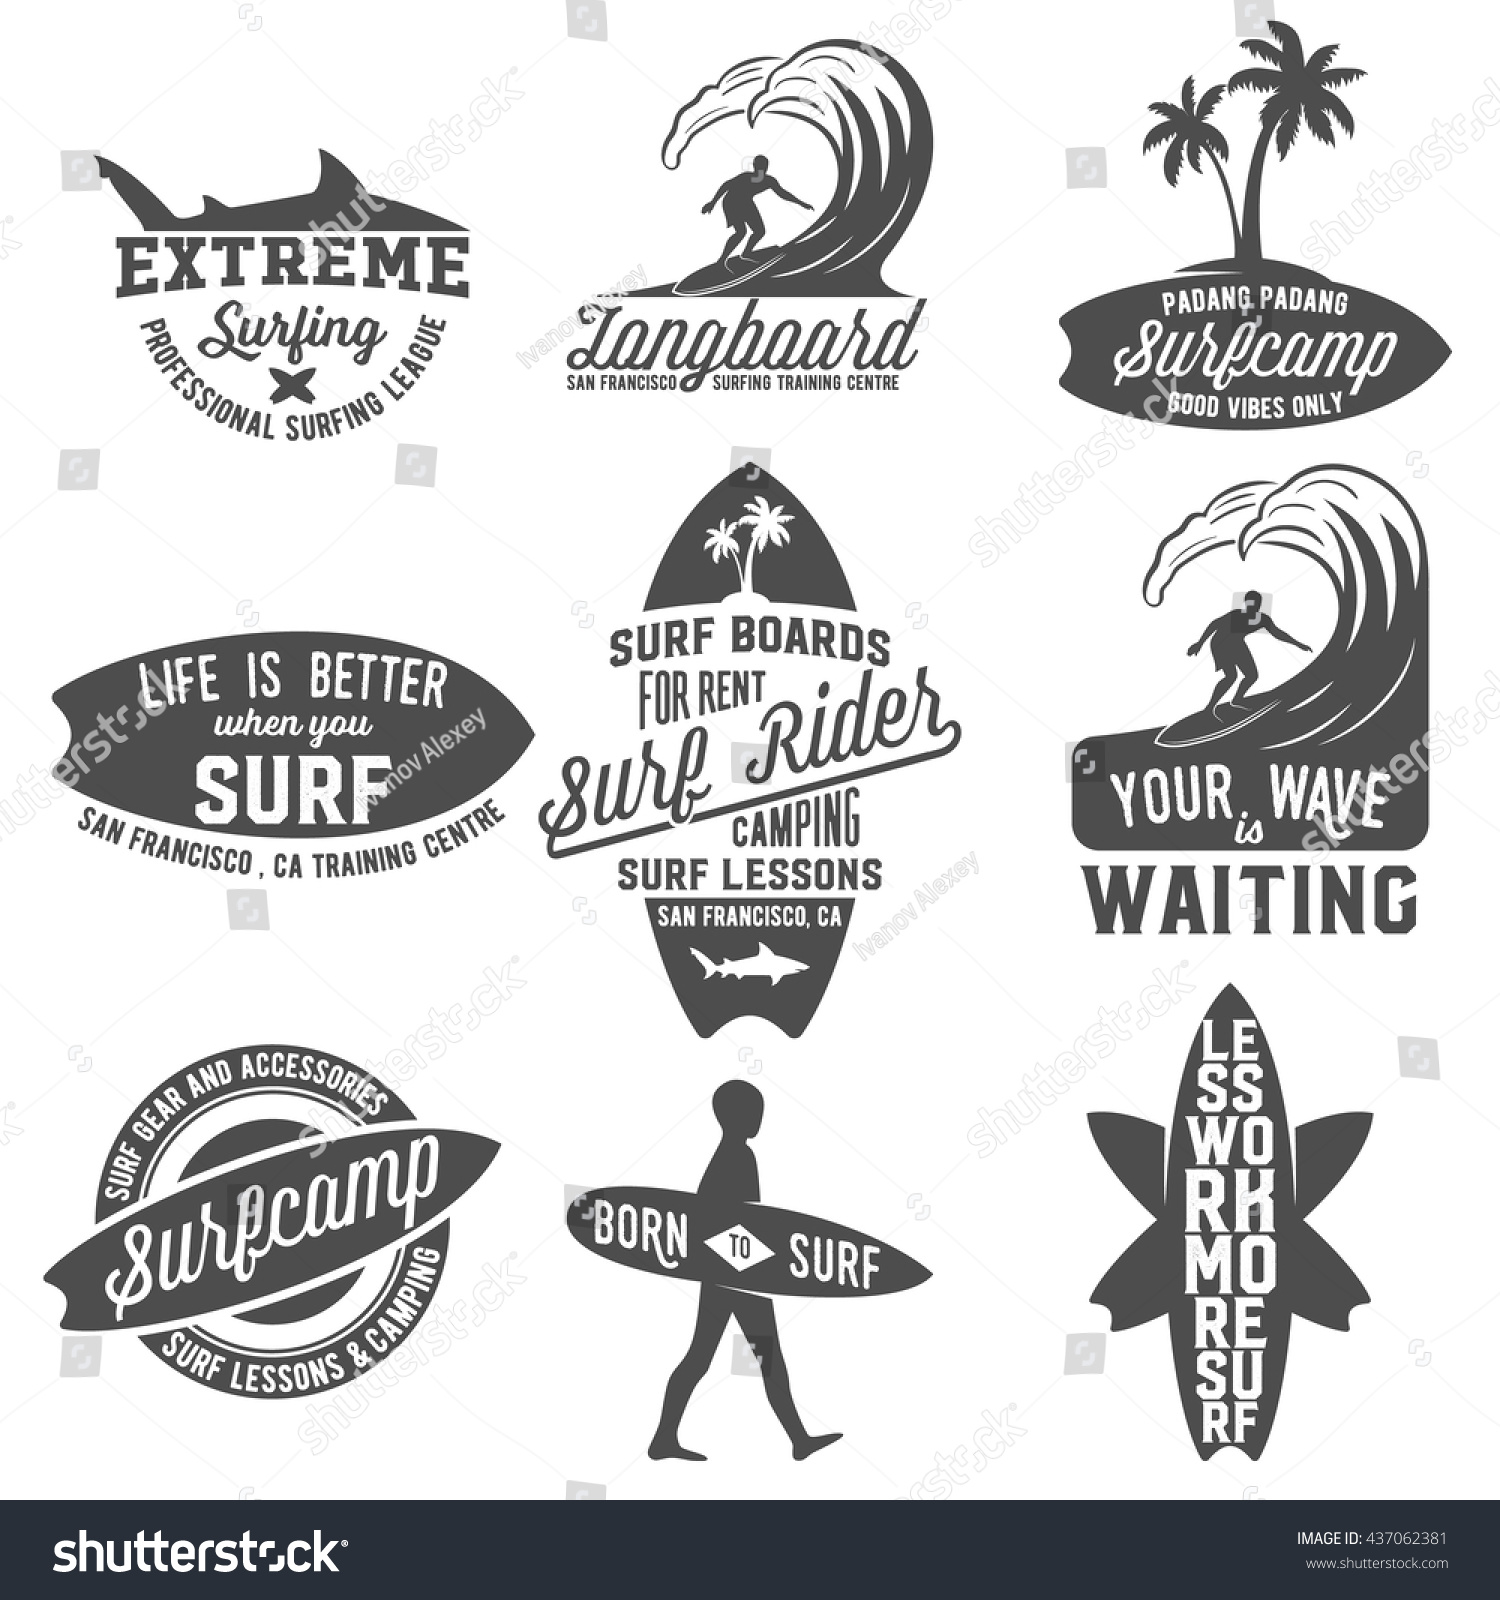 Set Of Vintage Surfing Logotypes, Badges, Quotes And ...